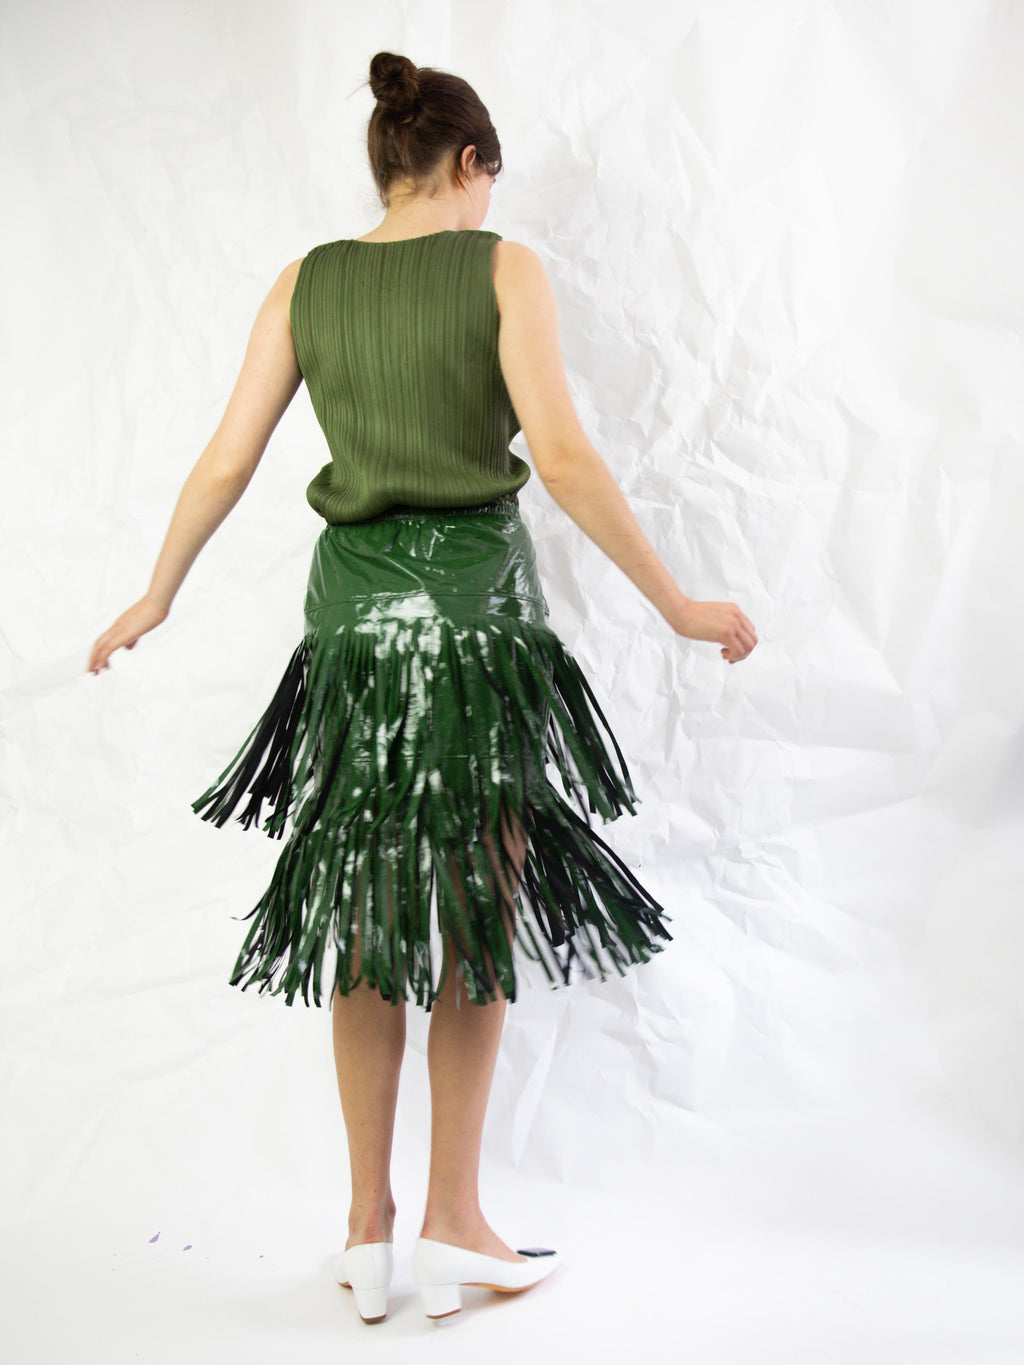 Vinyl Fringed Skirt